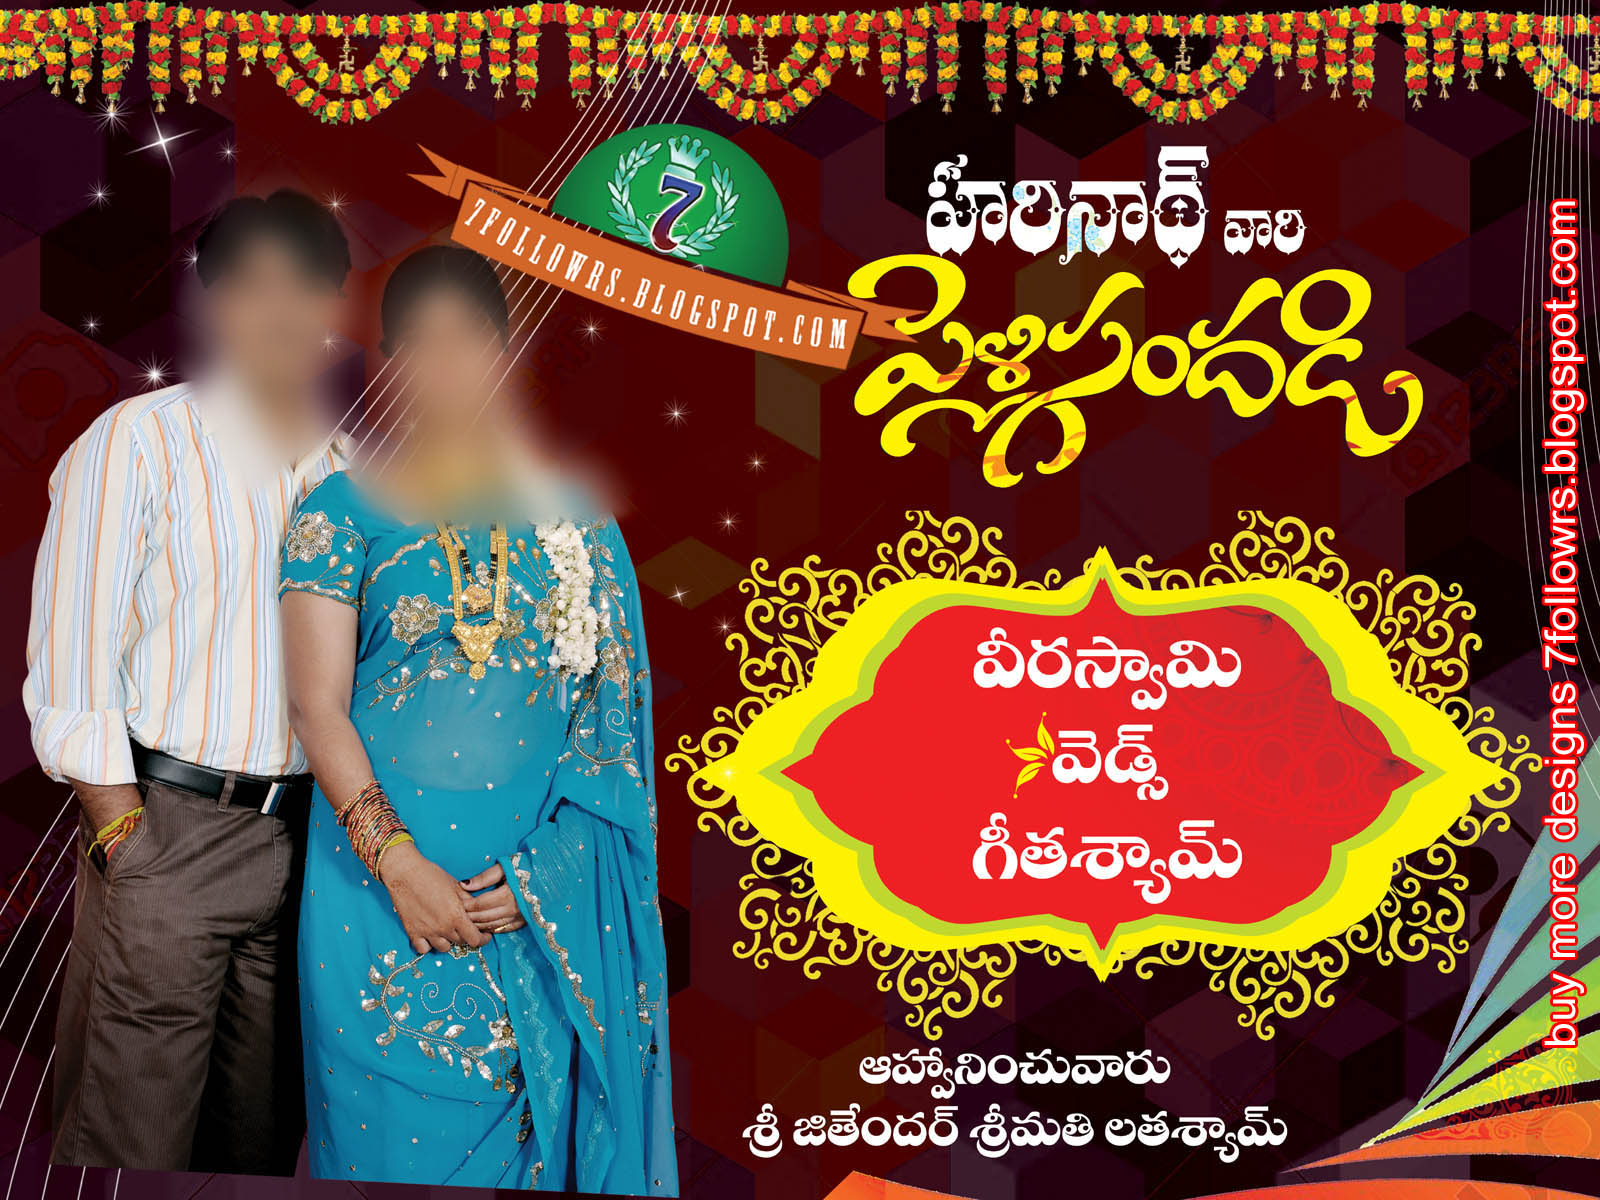 24+ Wedding Banner Design Images